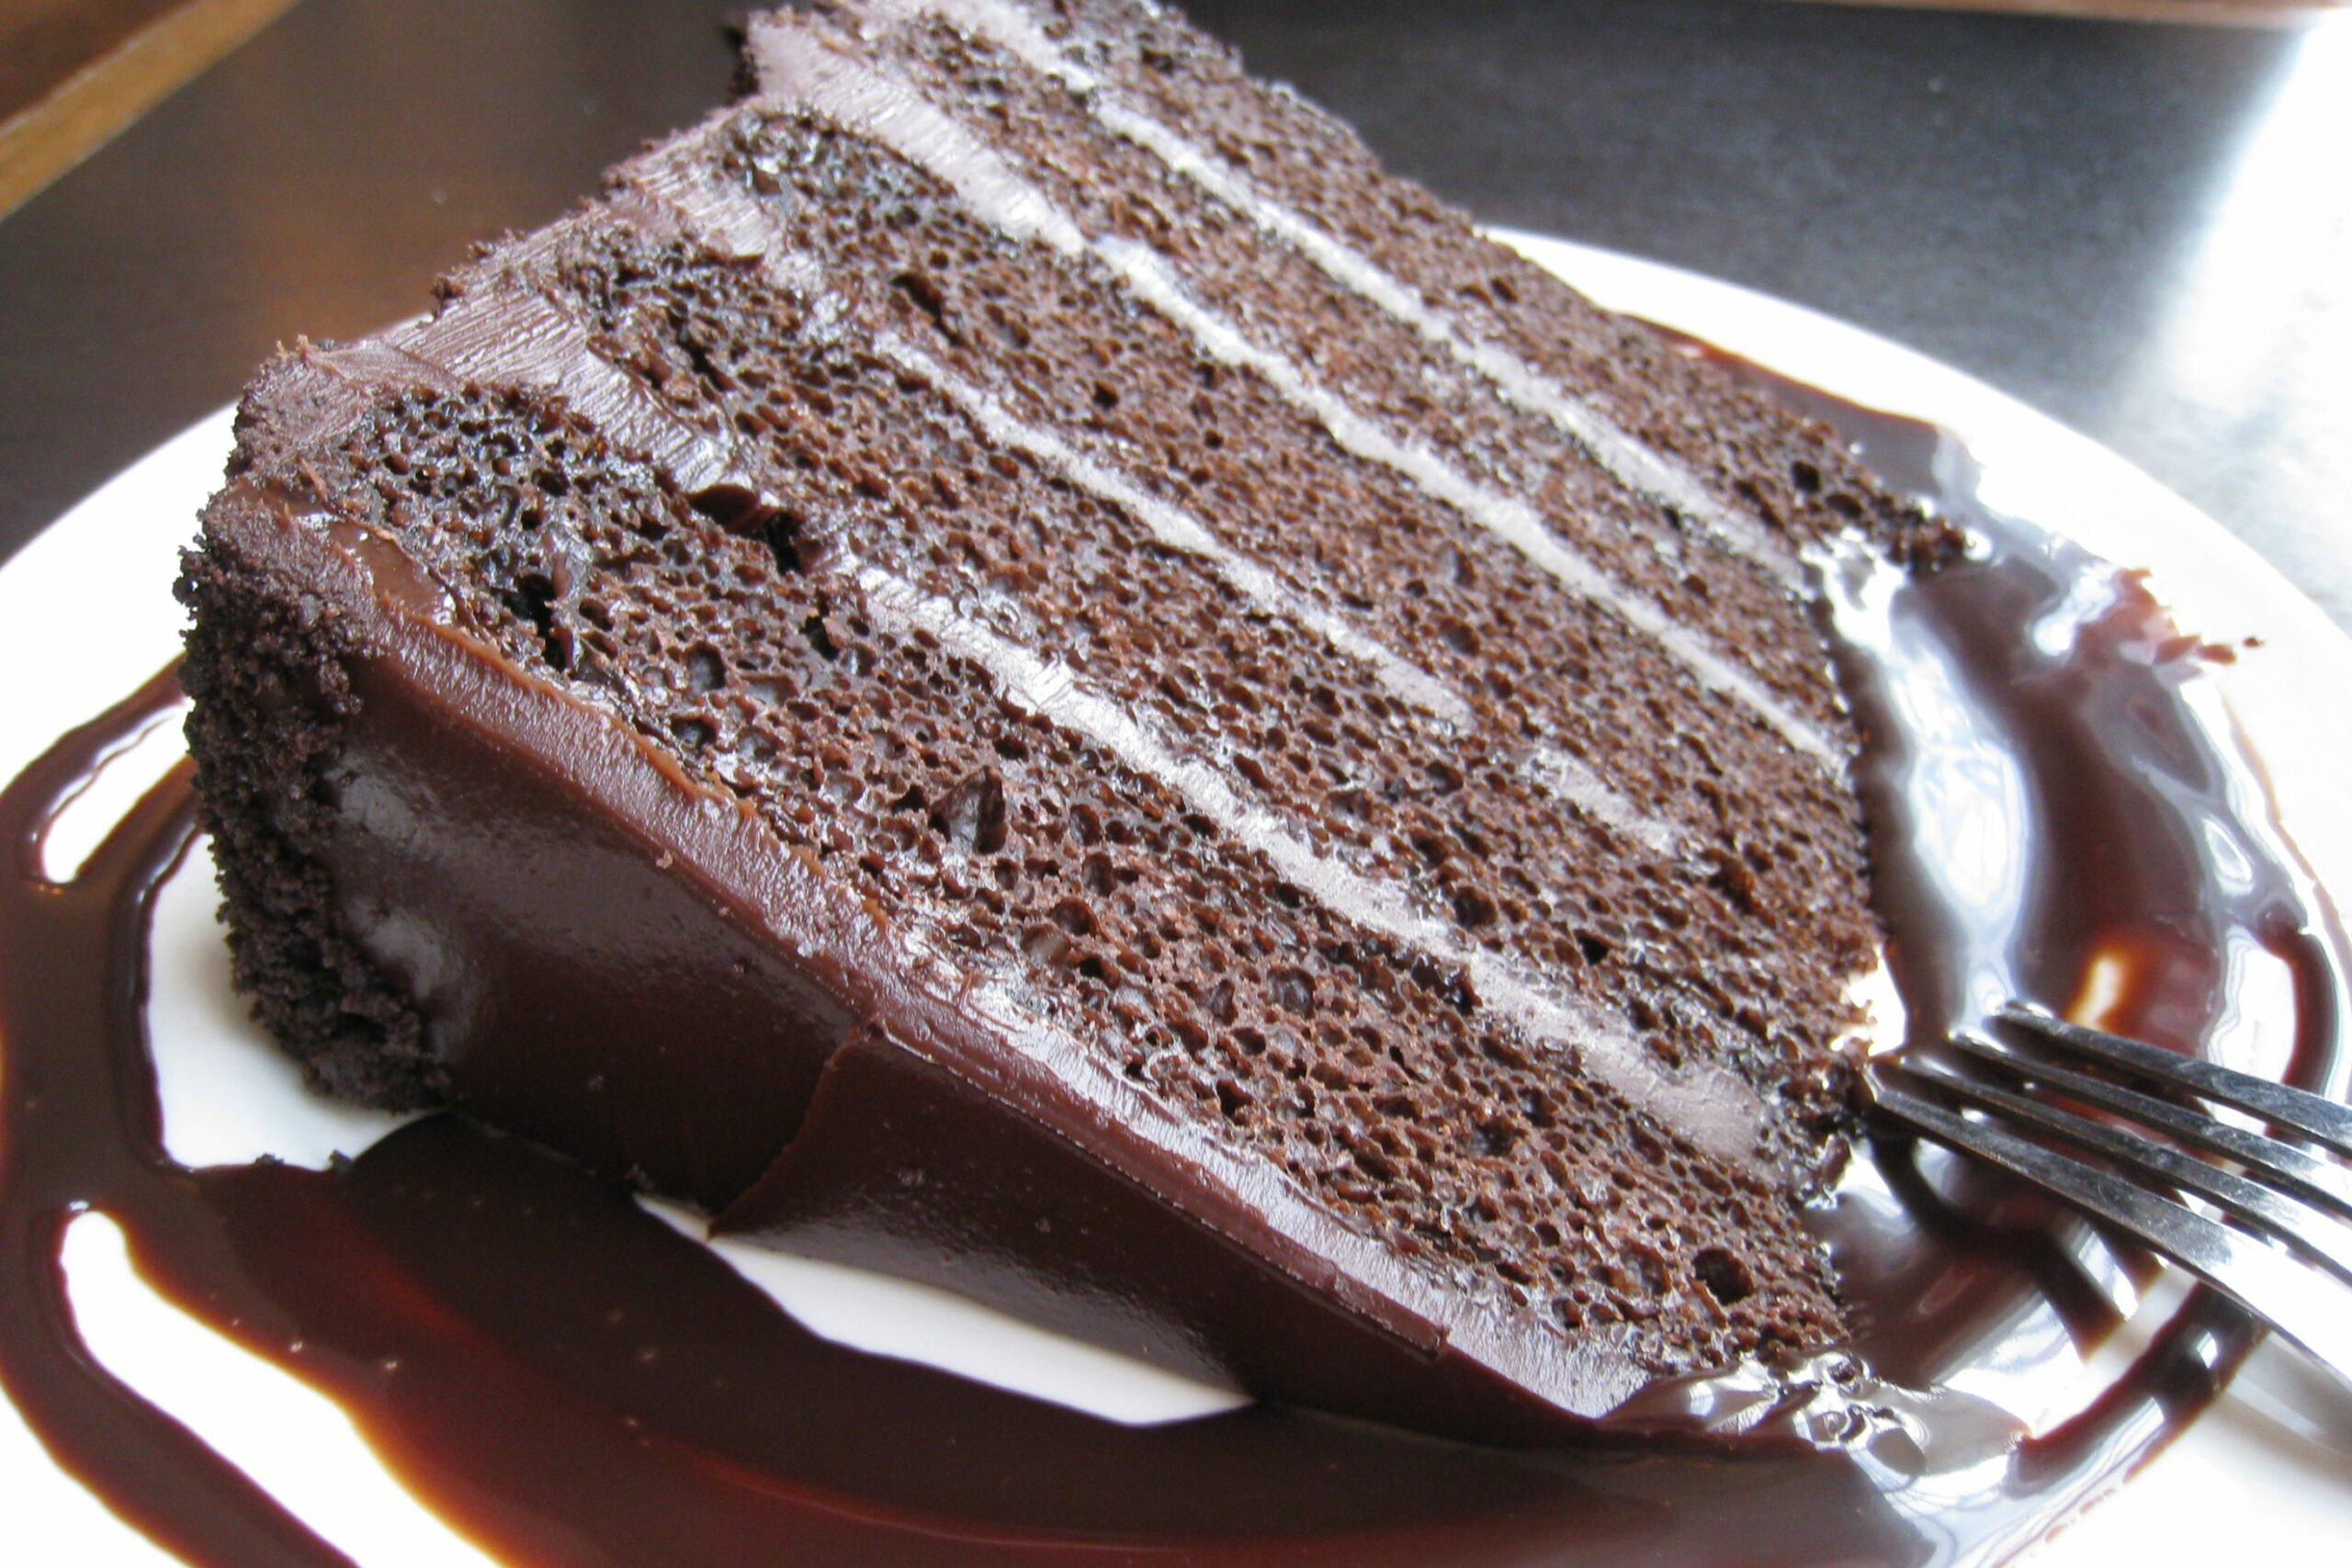 Chocolate Cake with Chocolate Frosting - Recipe Chocolate Layer Cake